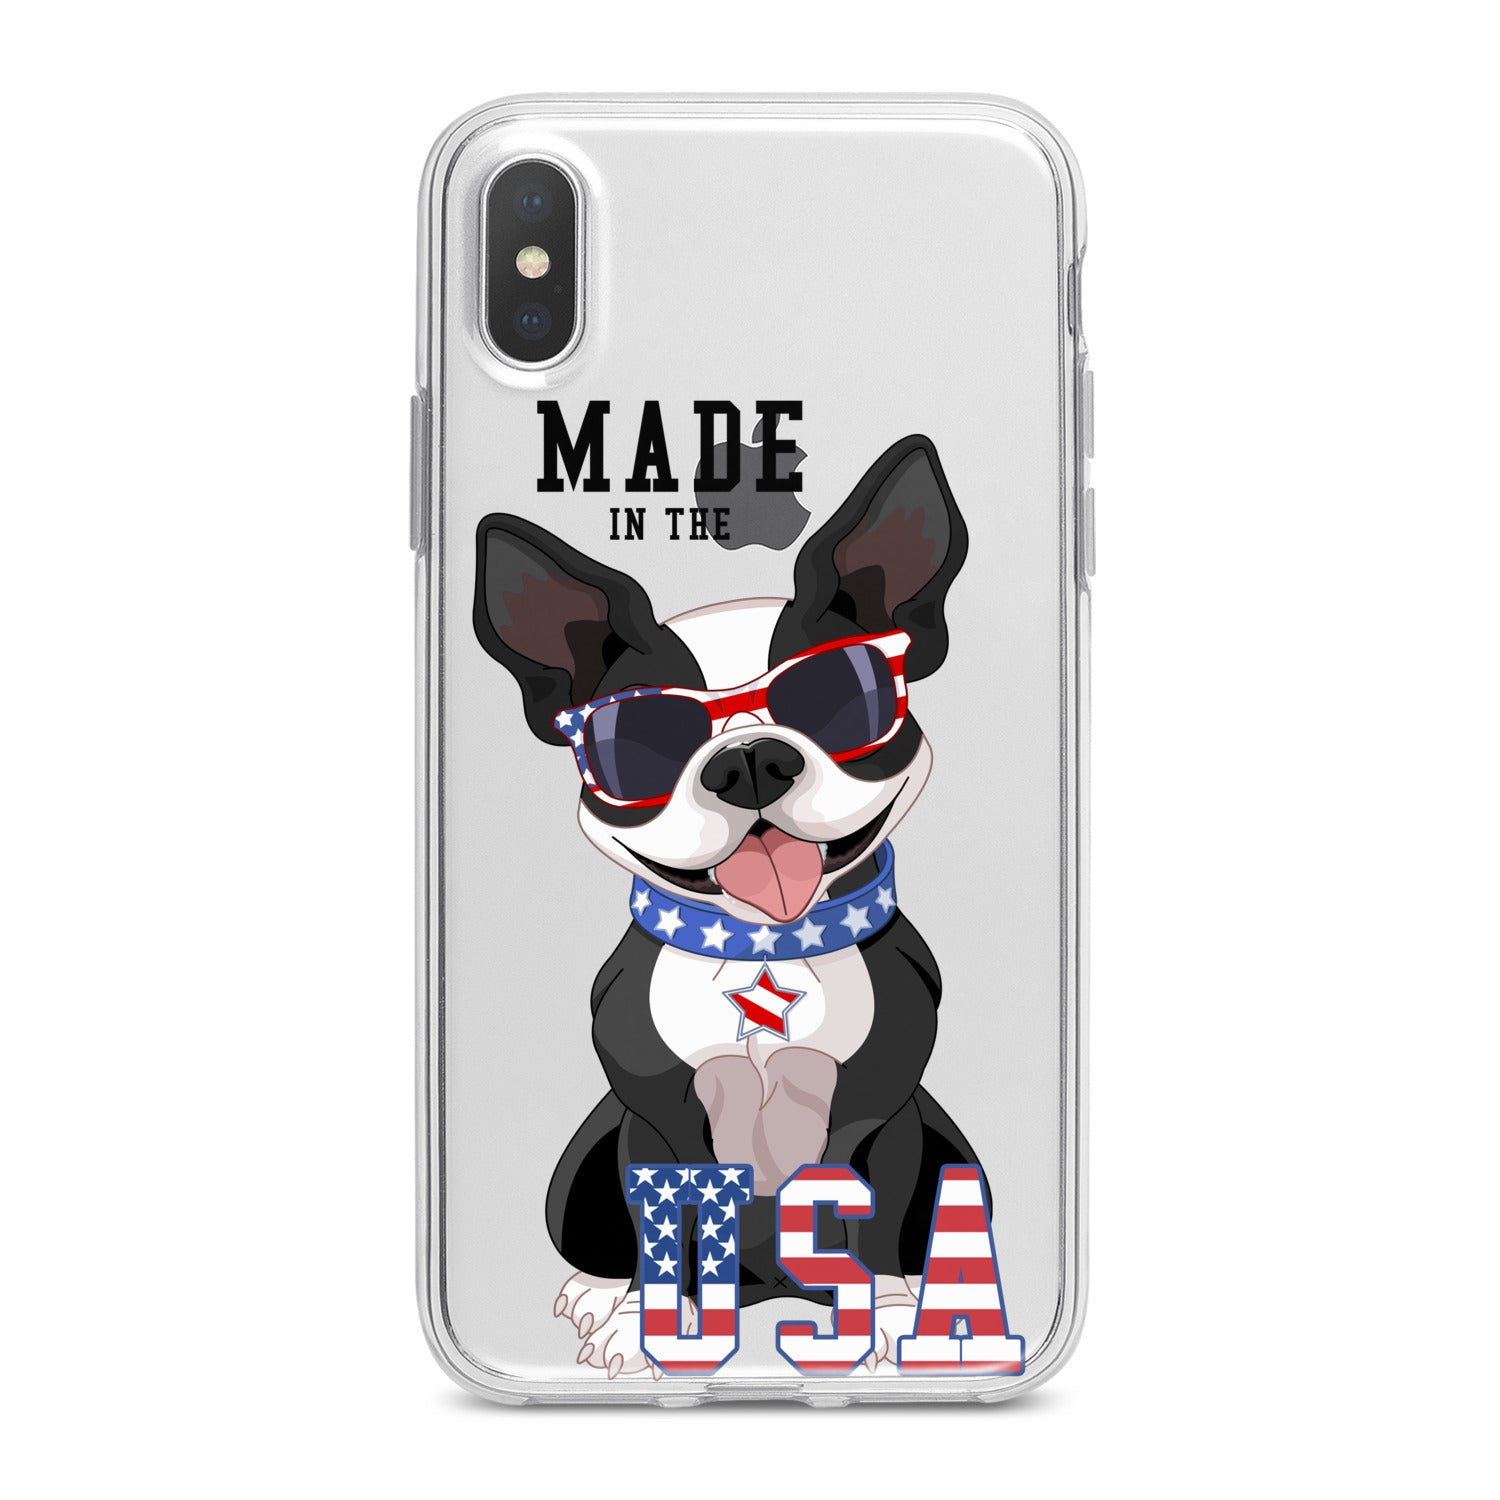 Lex Altern Quote Usa Bulldog Phone Case for your iPhone & Android phone.